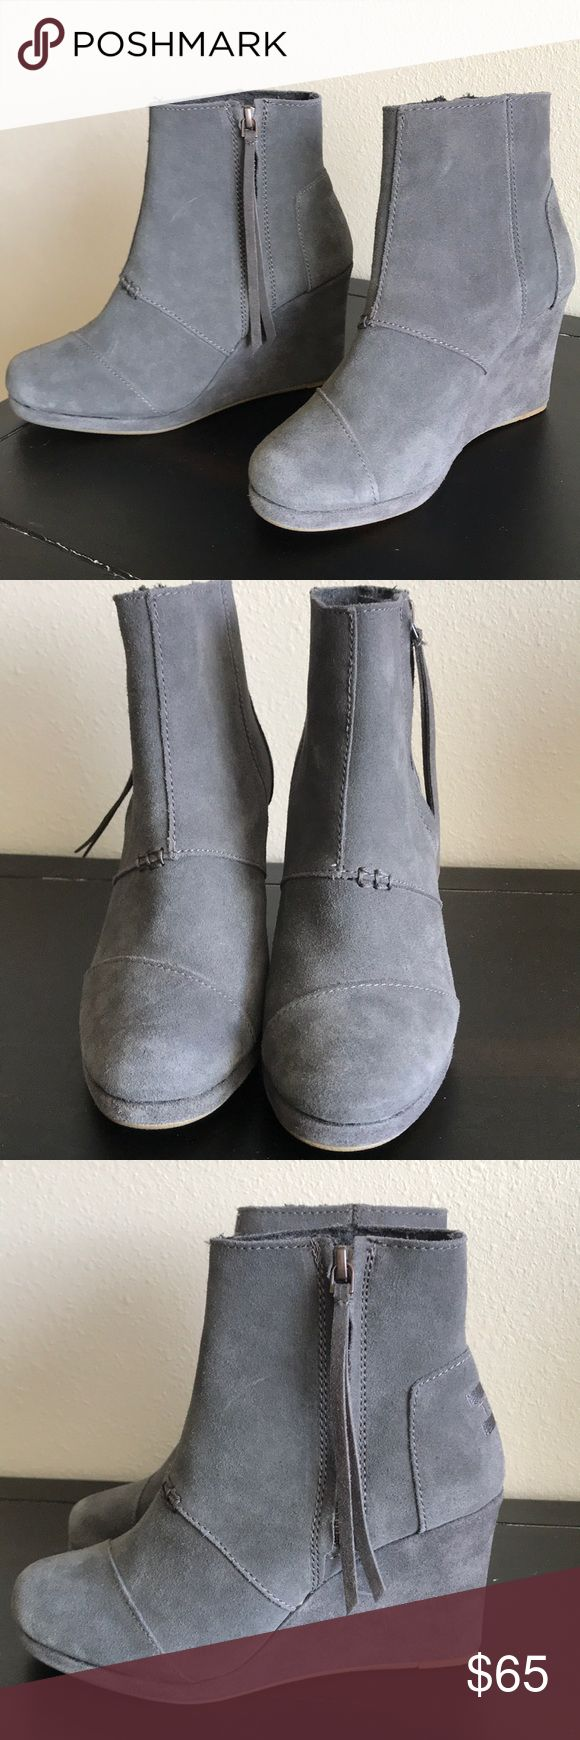 New, size 6 gray TOMS booties New, size 6 gray TOMS booties that have a stylish and functioning side zipper and approximately a 2.5 inch heel. They will look great with jeans or tucked into leggings. Toms Shoes Ankle Boots & Booties